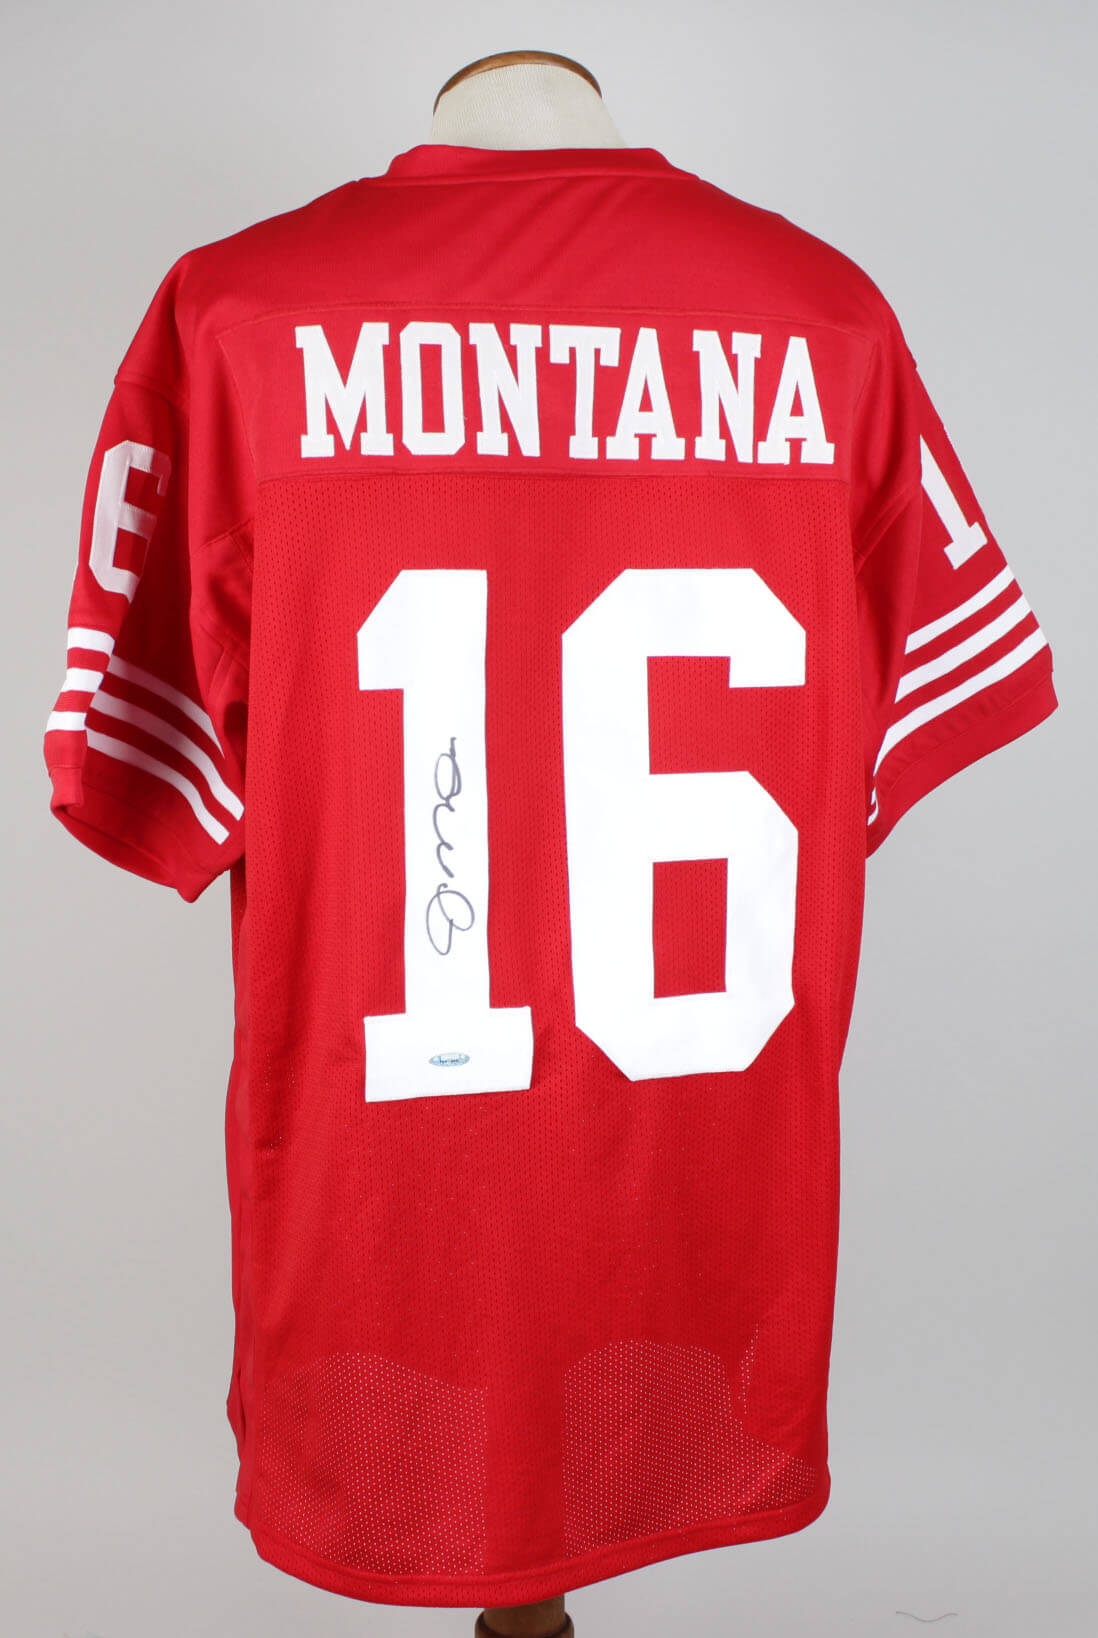 quality design 9c4ea 8350a San Francisco 49ers - Joe Montana Signed Red Jersey - Tri Star